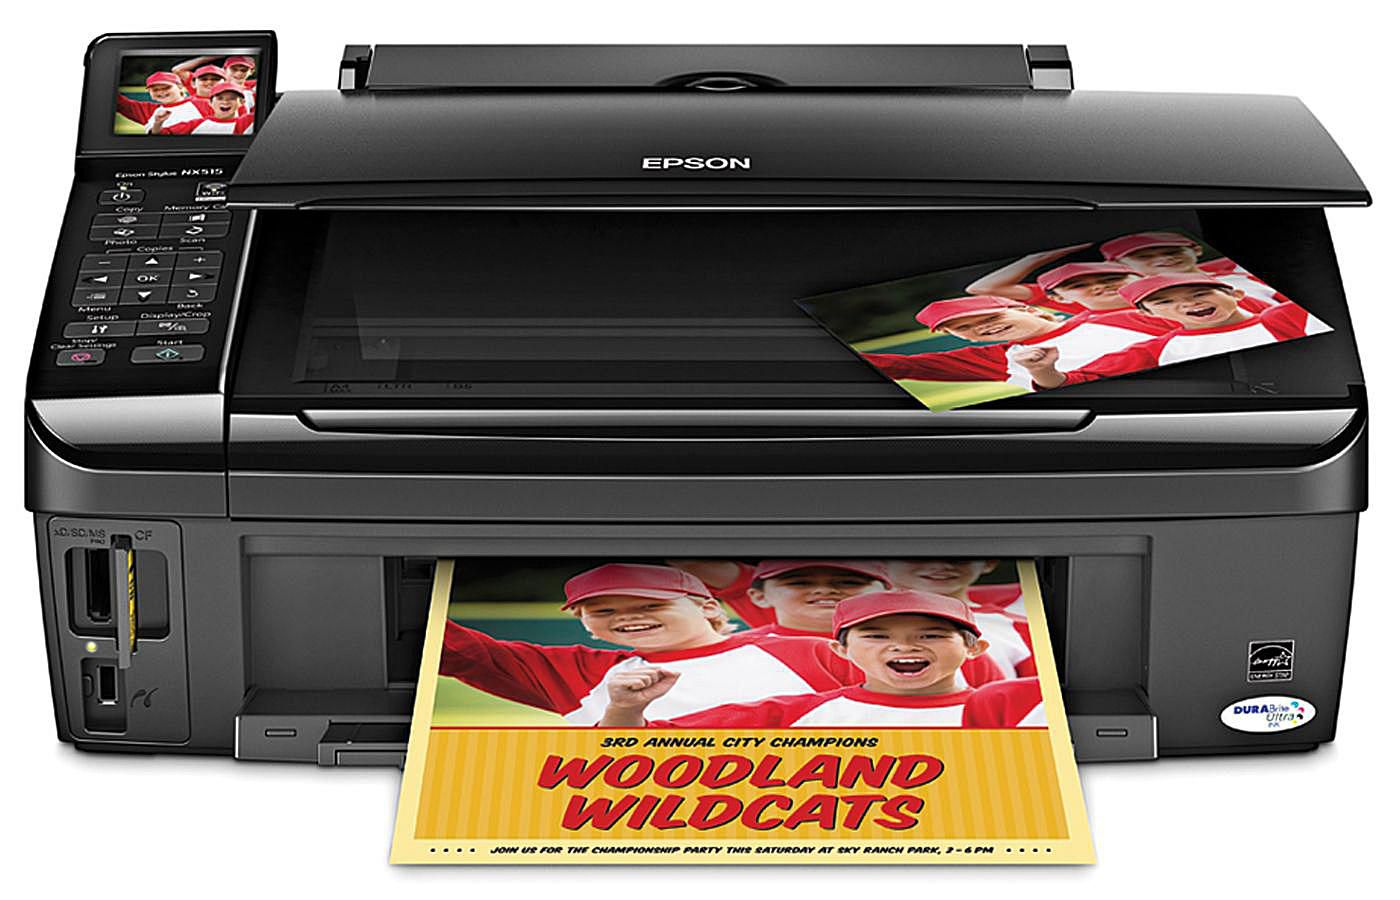 Best color printing quality - Fast And Good Looking Prints With Epson S Nx515 All In One Printer